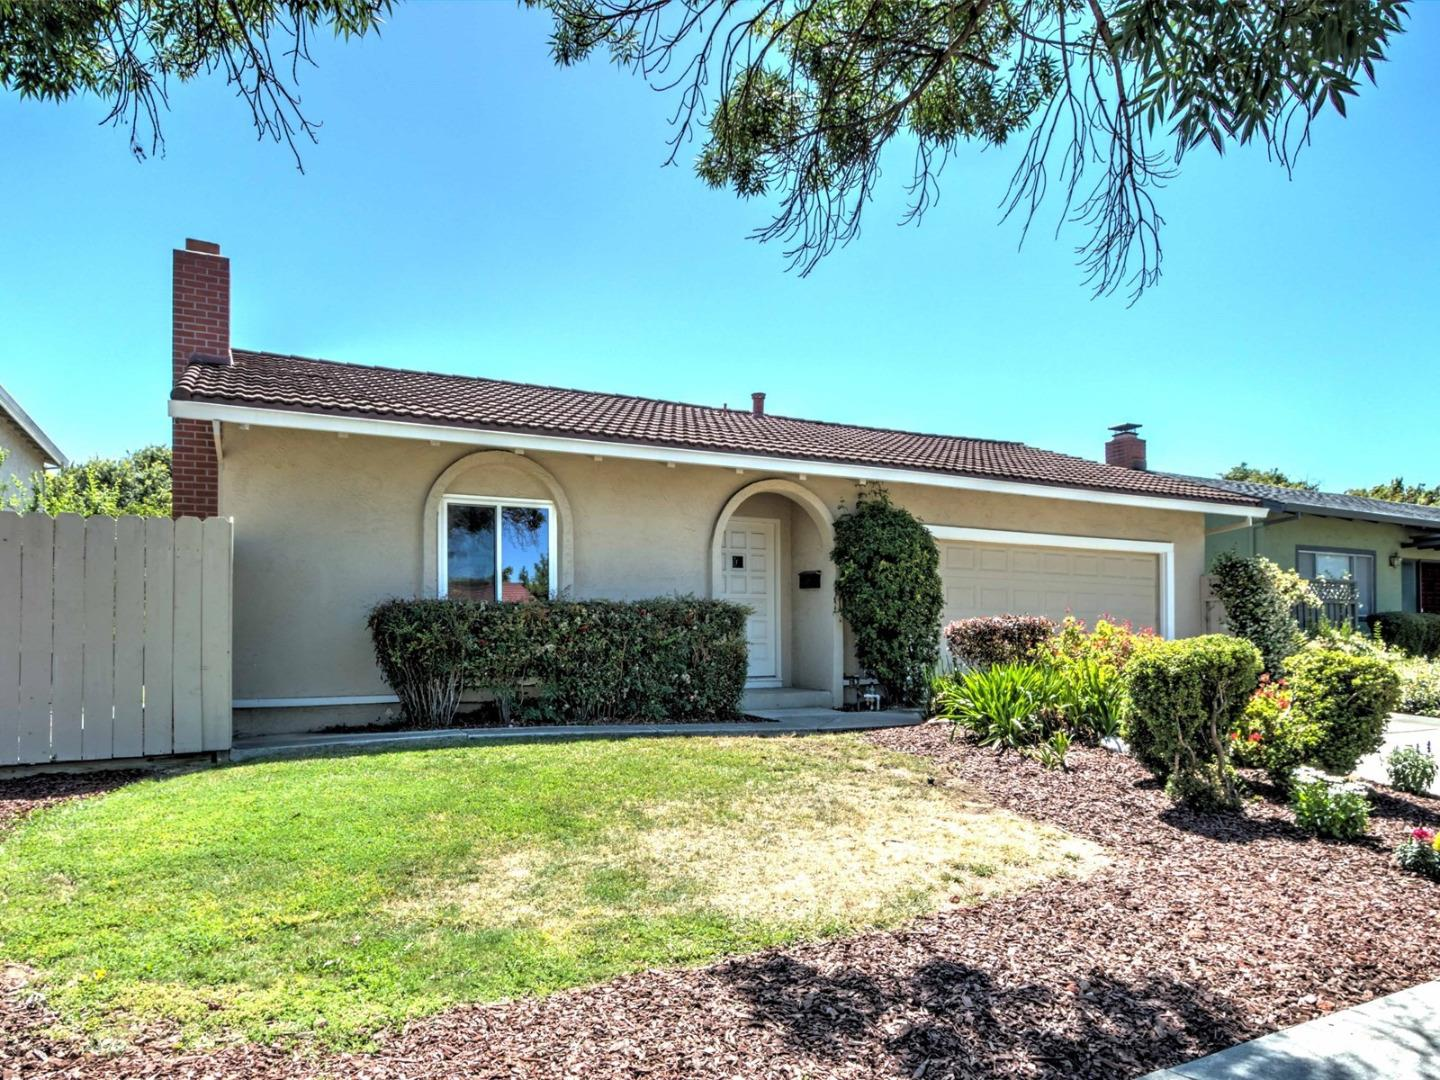 110 Del Prado Drive Campbell, CA 95008 - MLS #: ML81710397